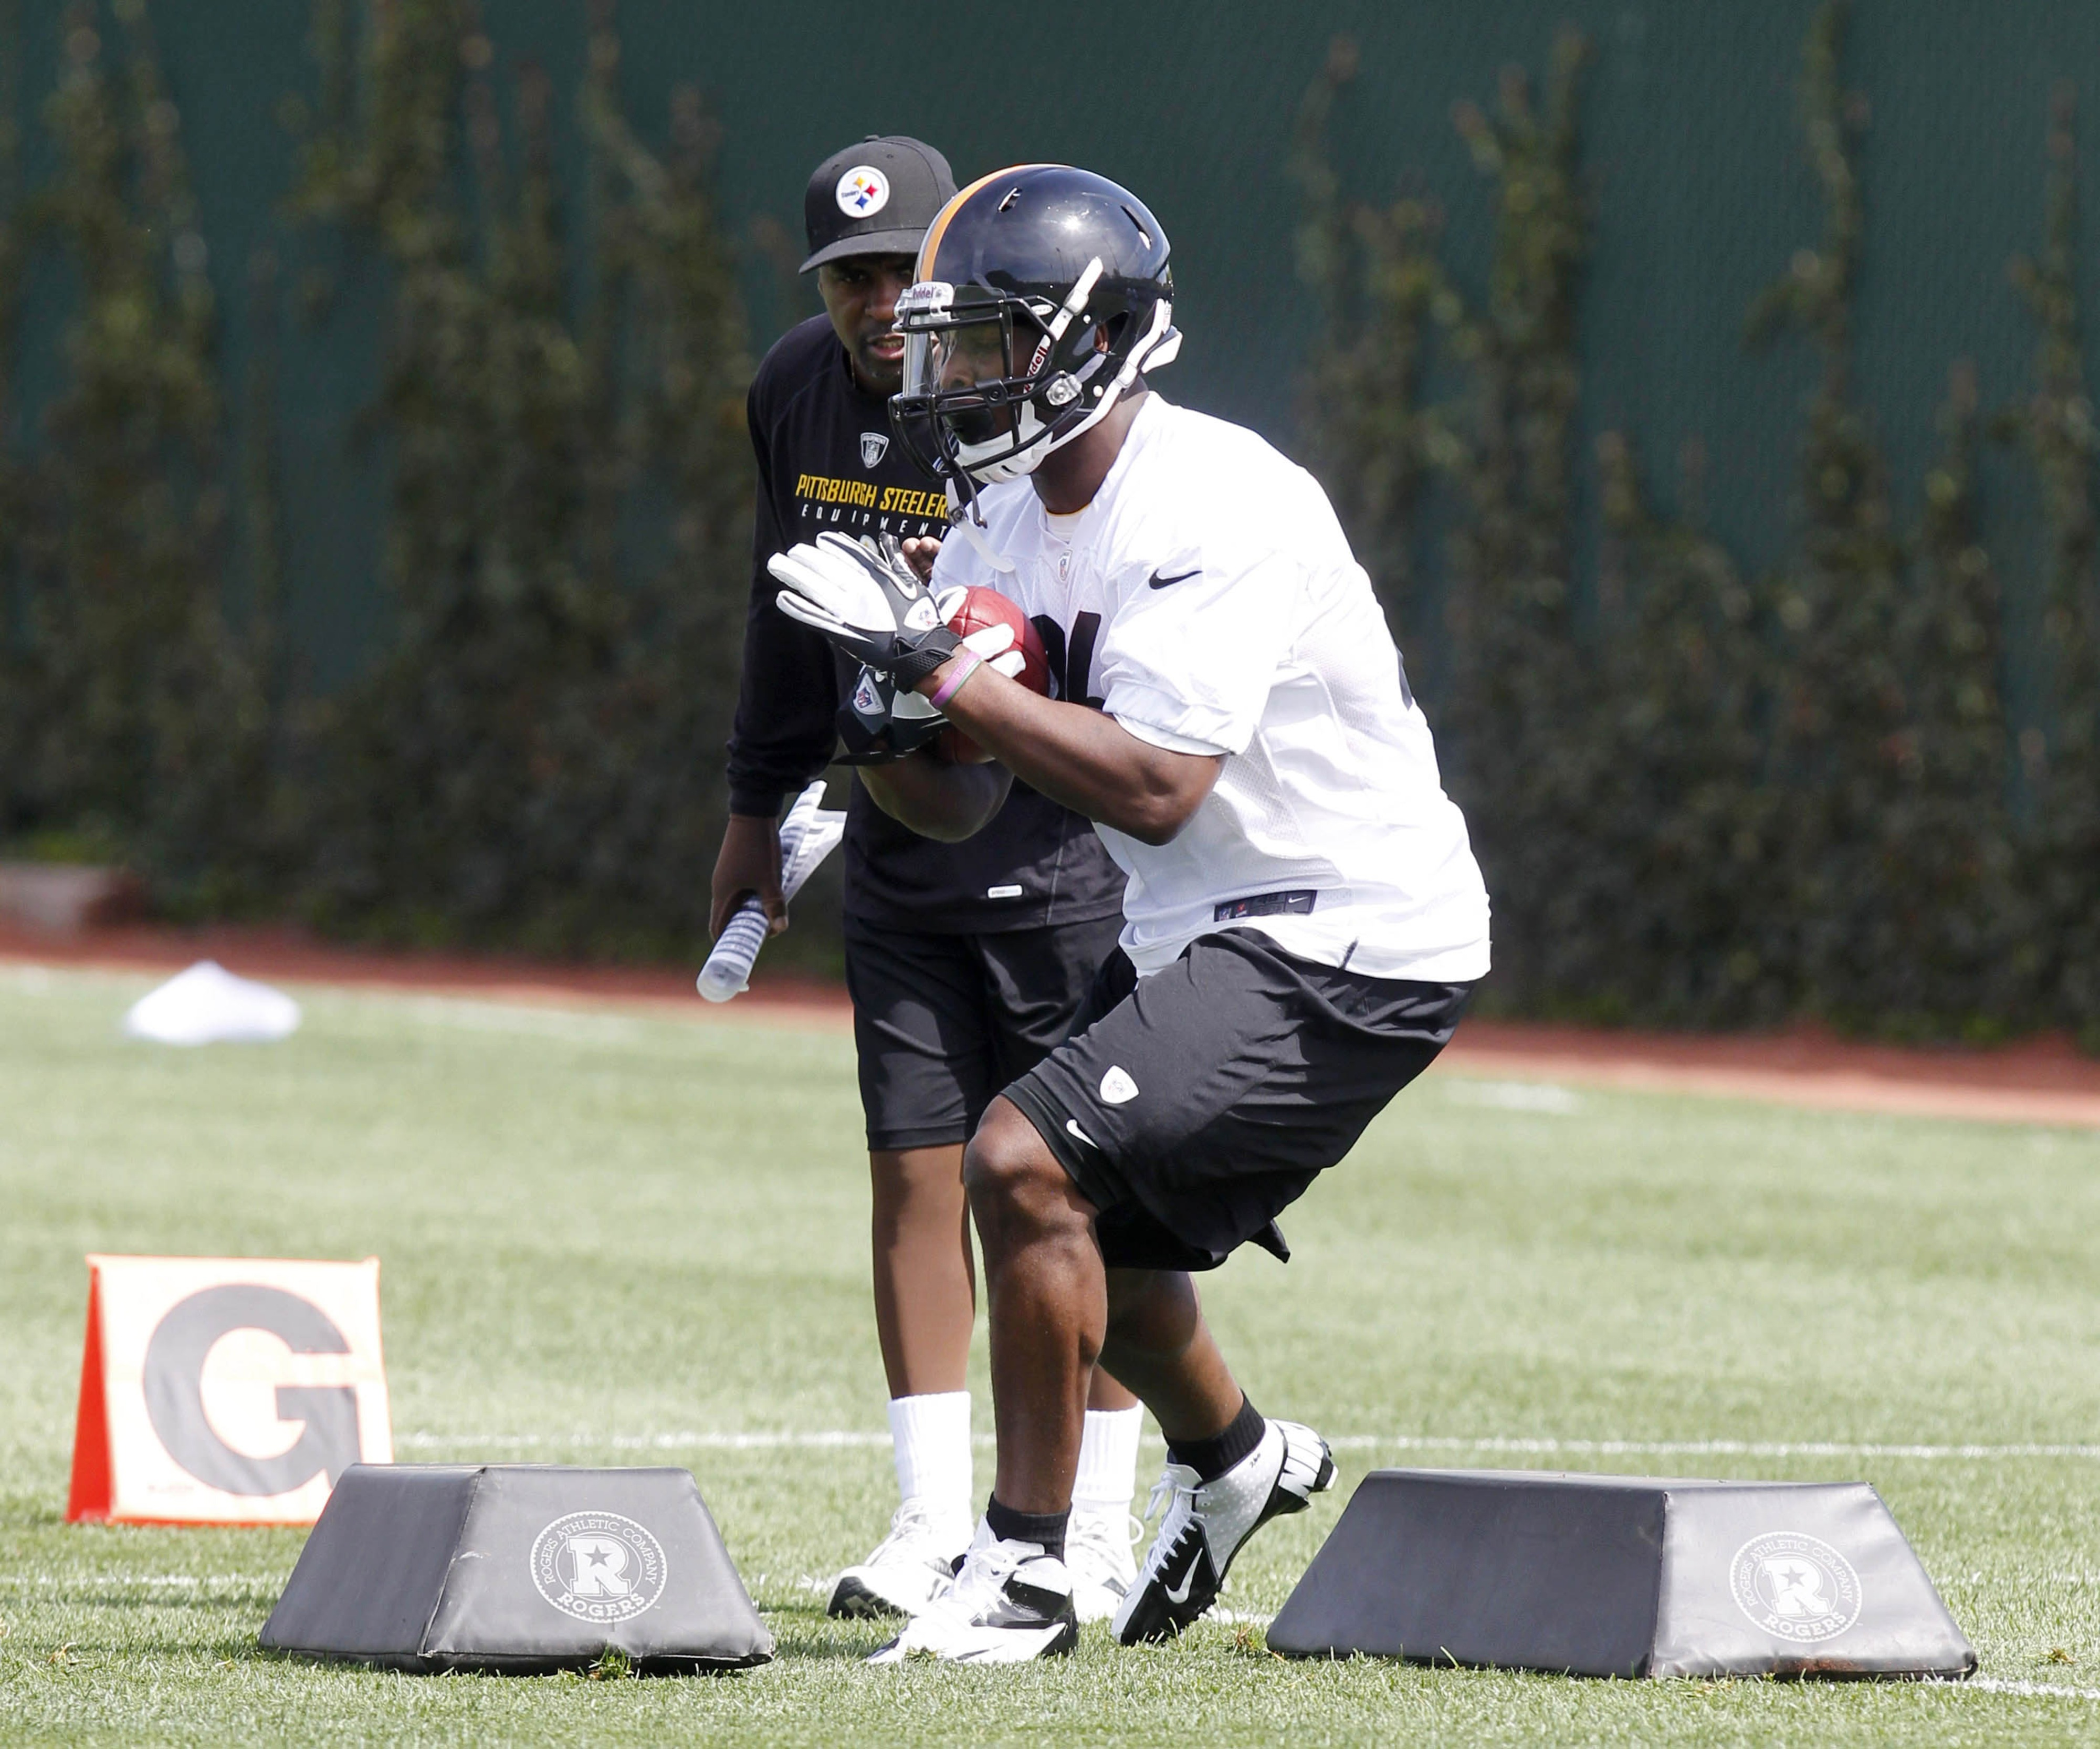 Steelers RB Le'Veon Bell is not impressive in this drill because he is in shorts.